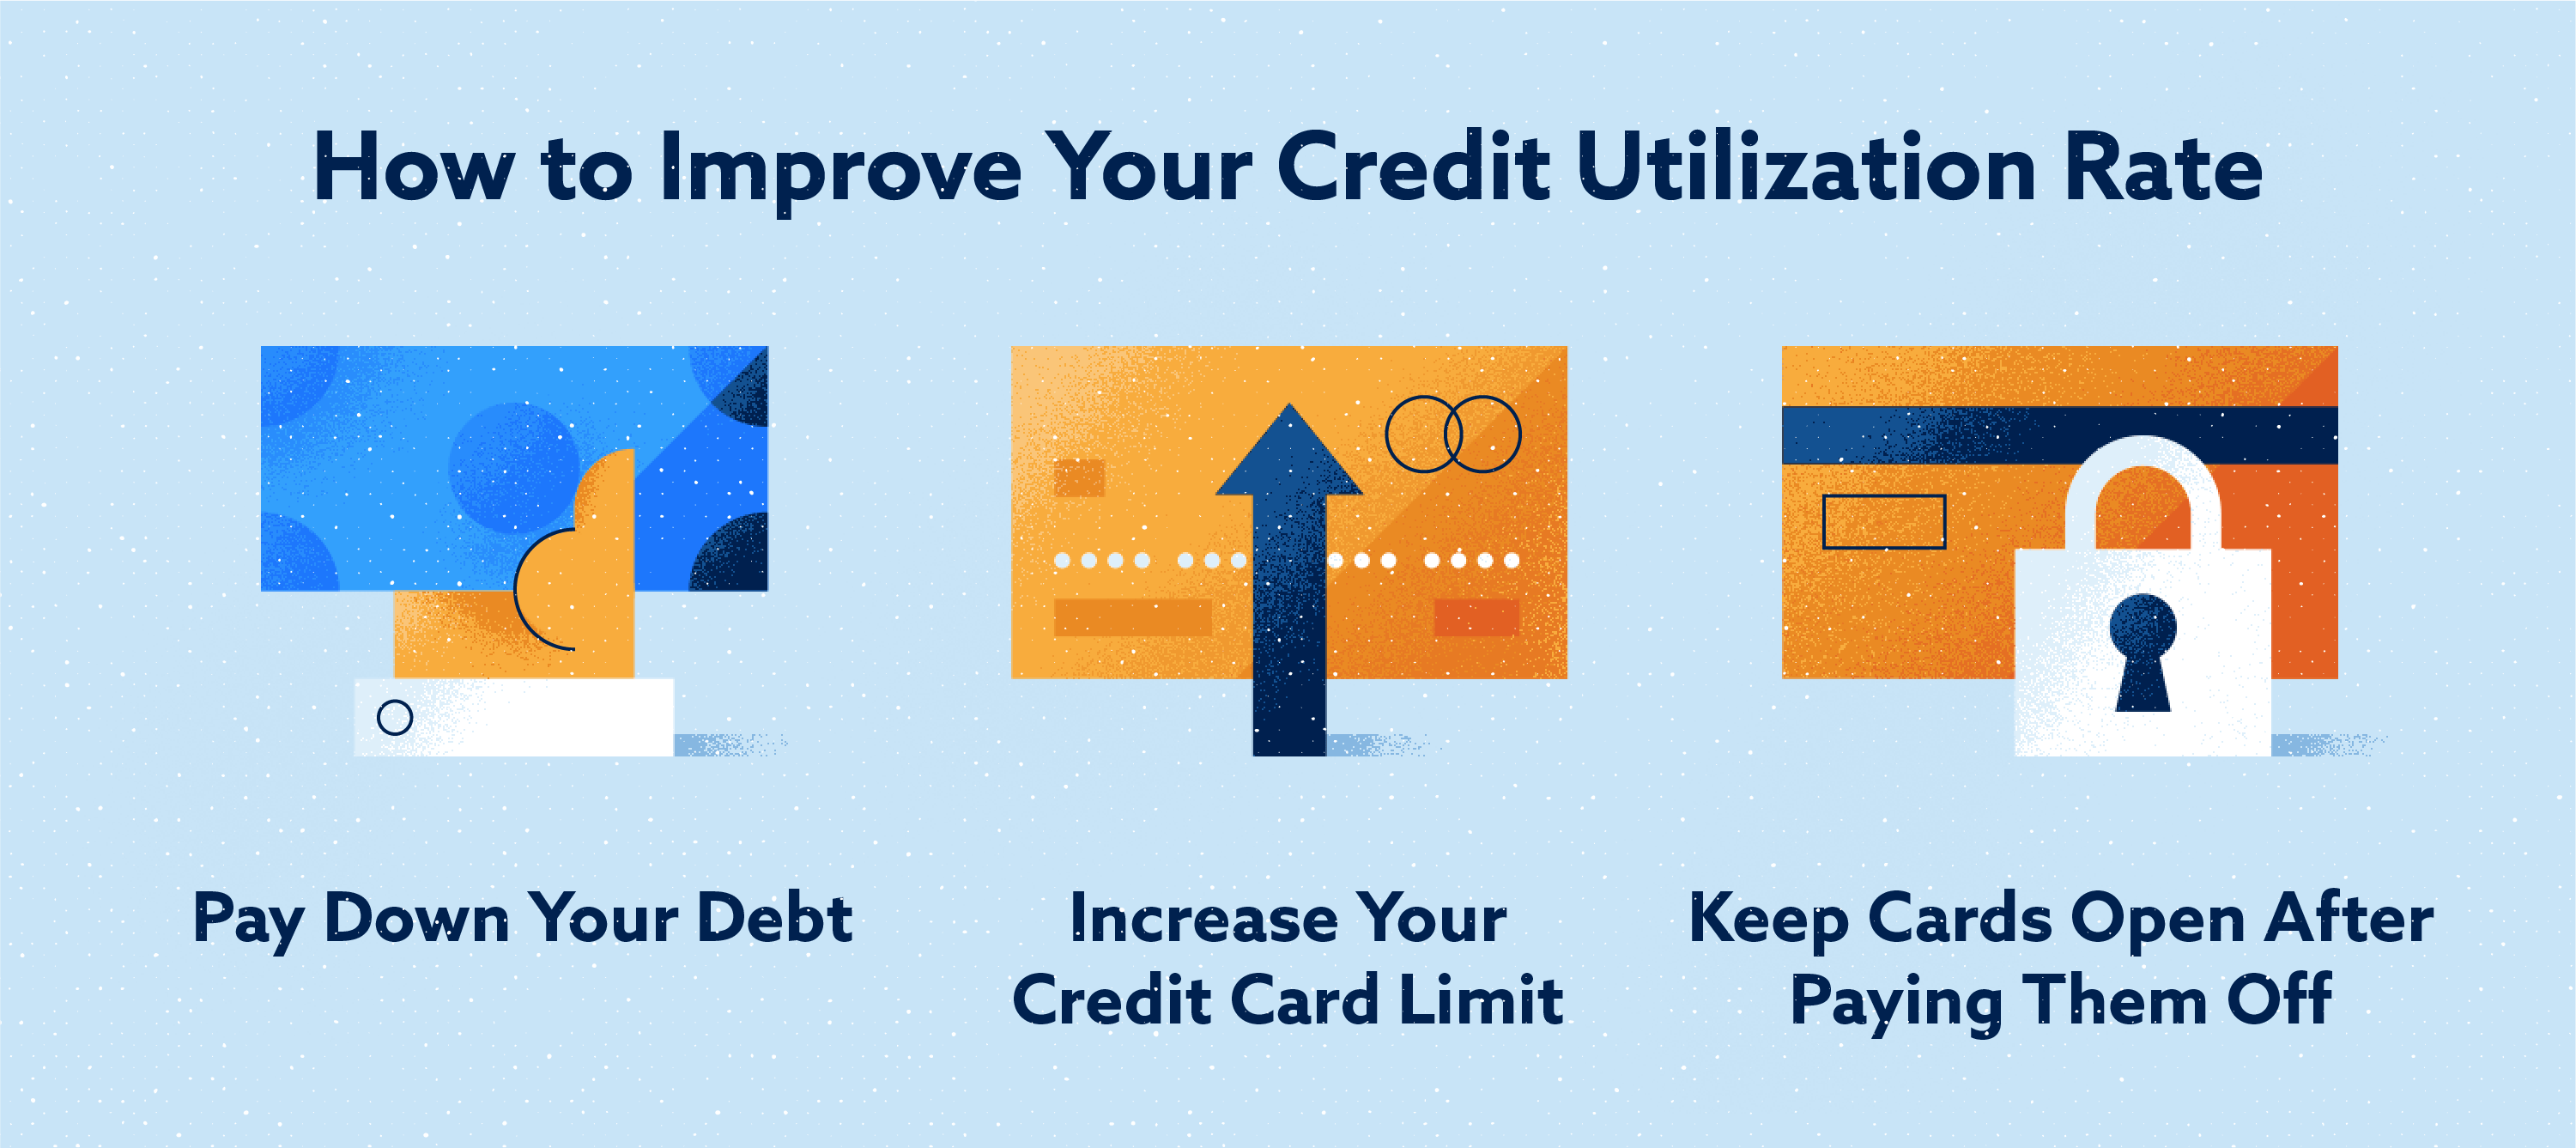 How to improve your credit utilization rate image